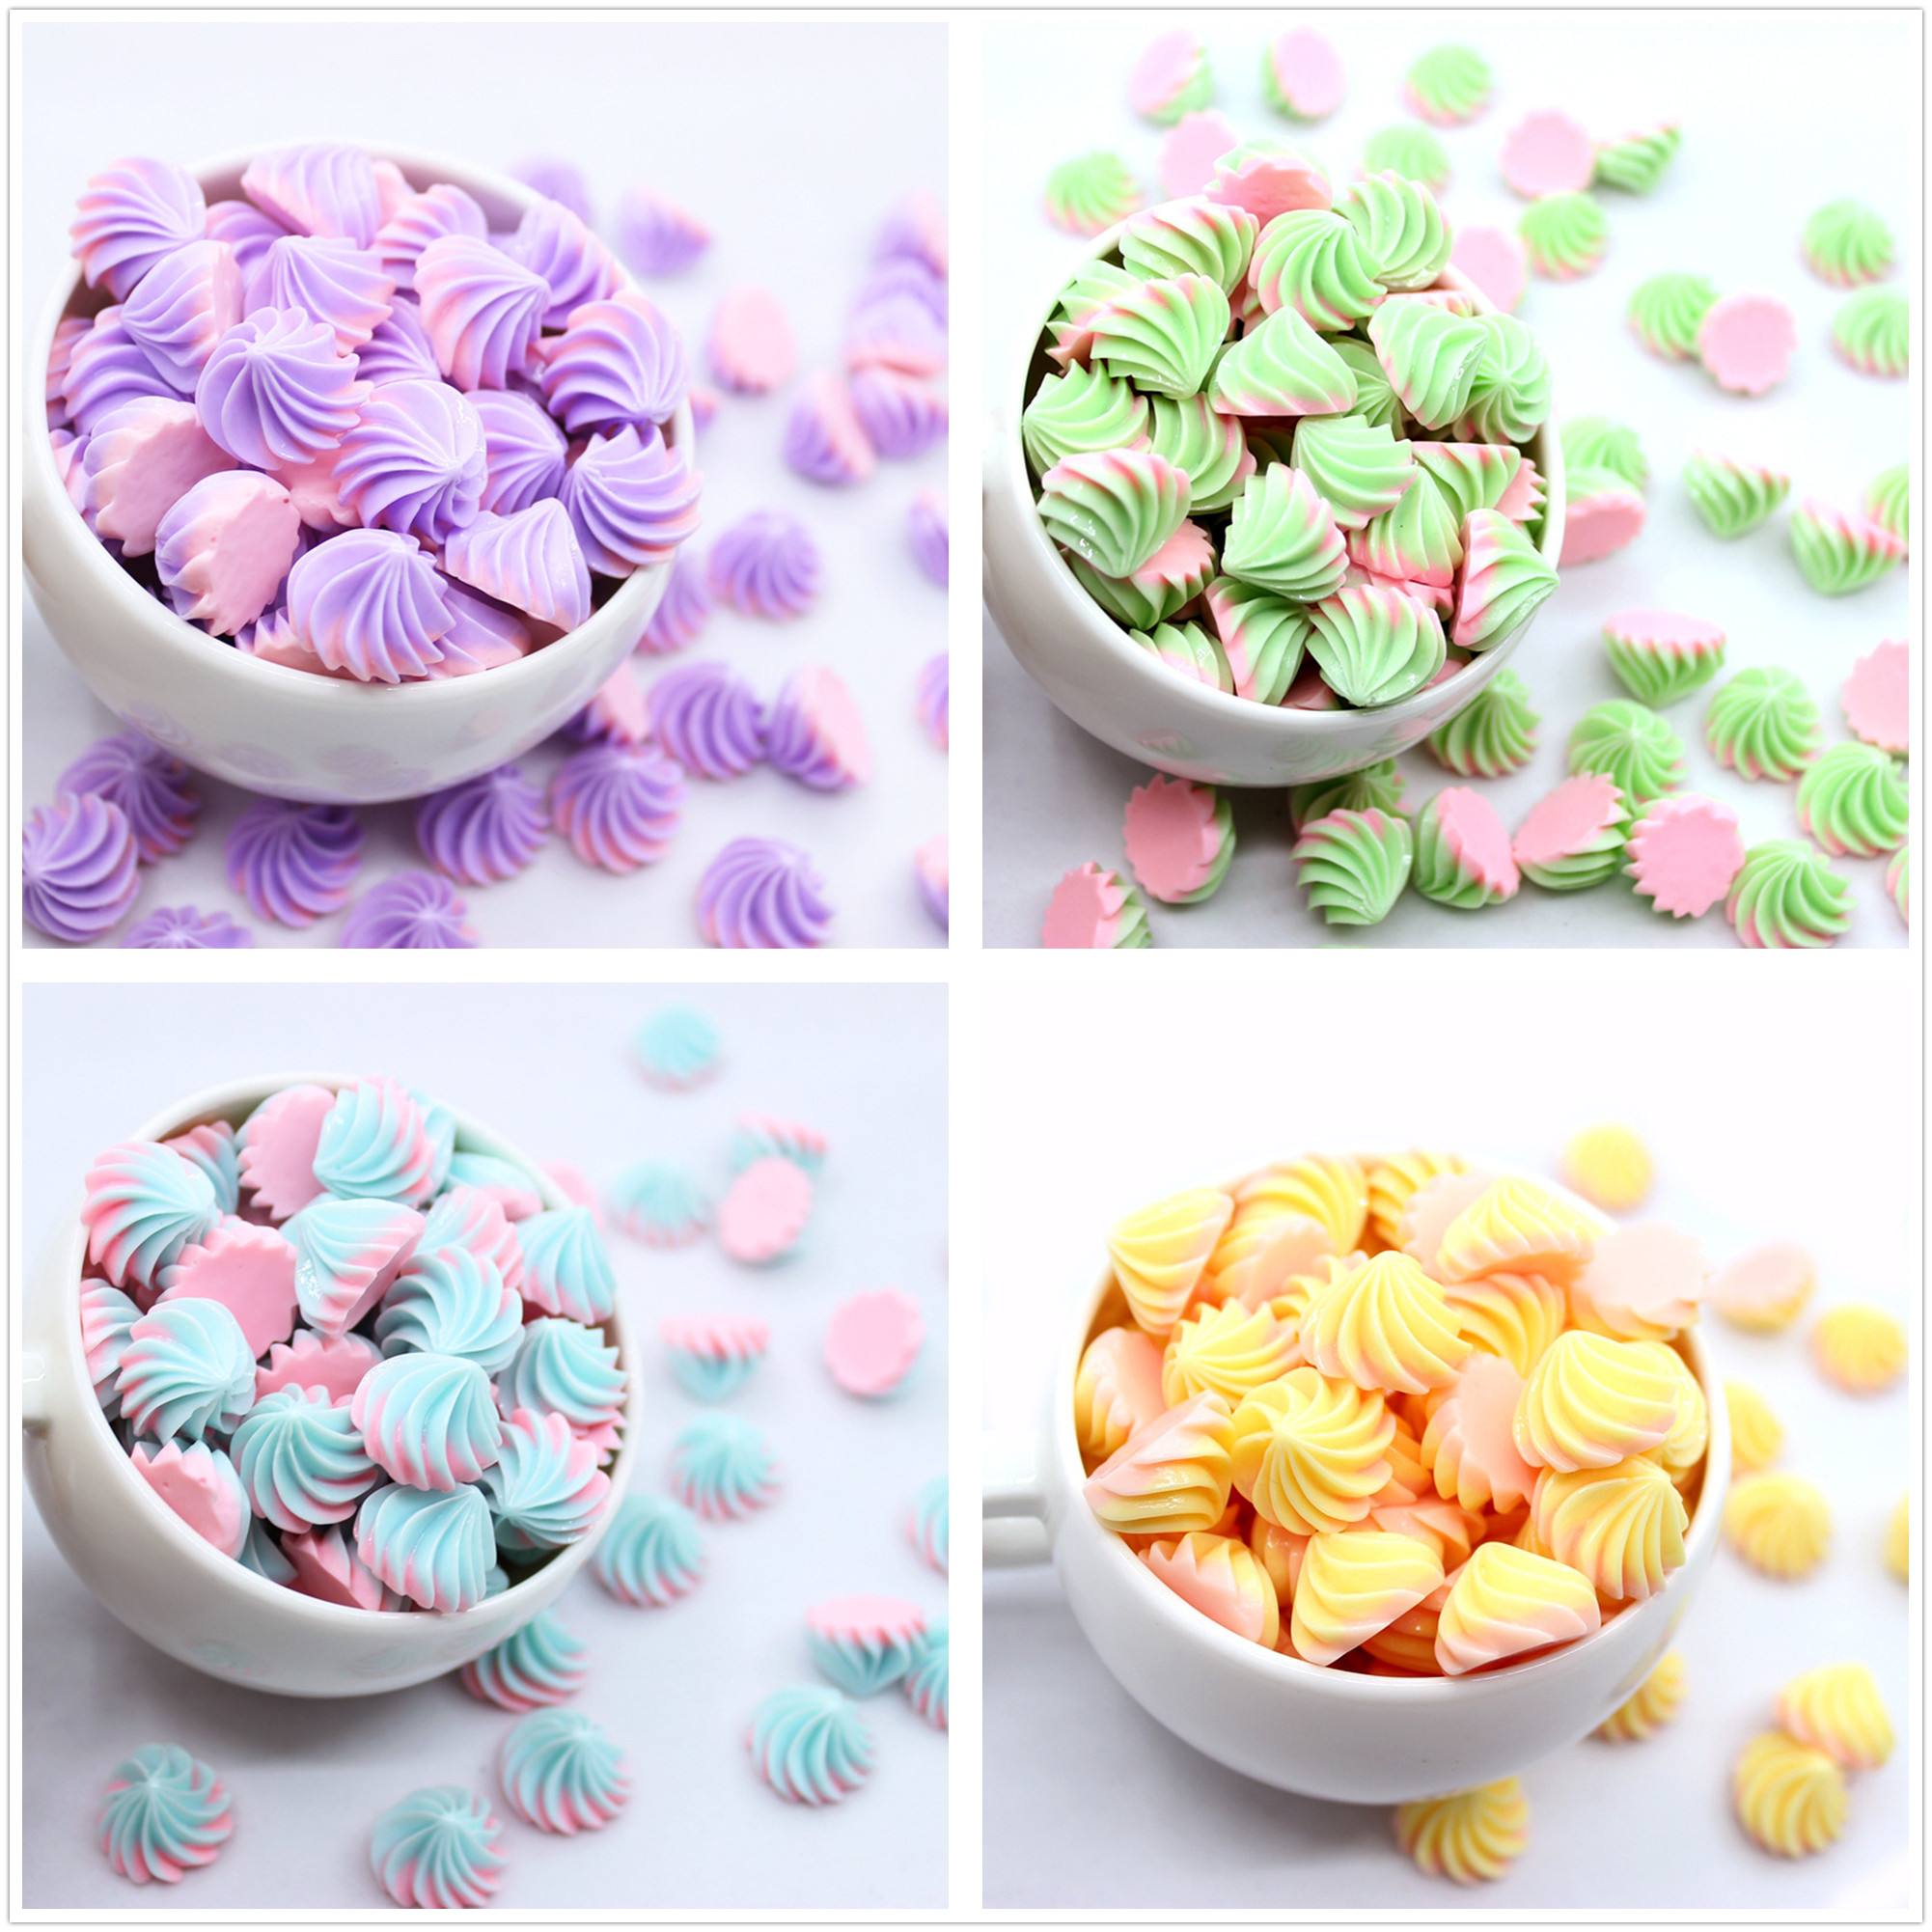 10pcs Mini Sugar Sweet Candy Biscuit Dollhouse Miniature Kitchen Toy Decoration